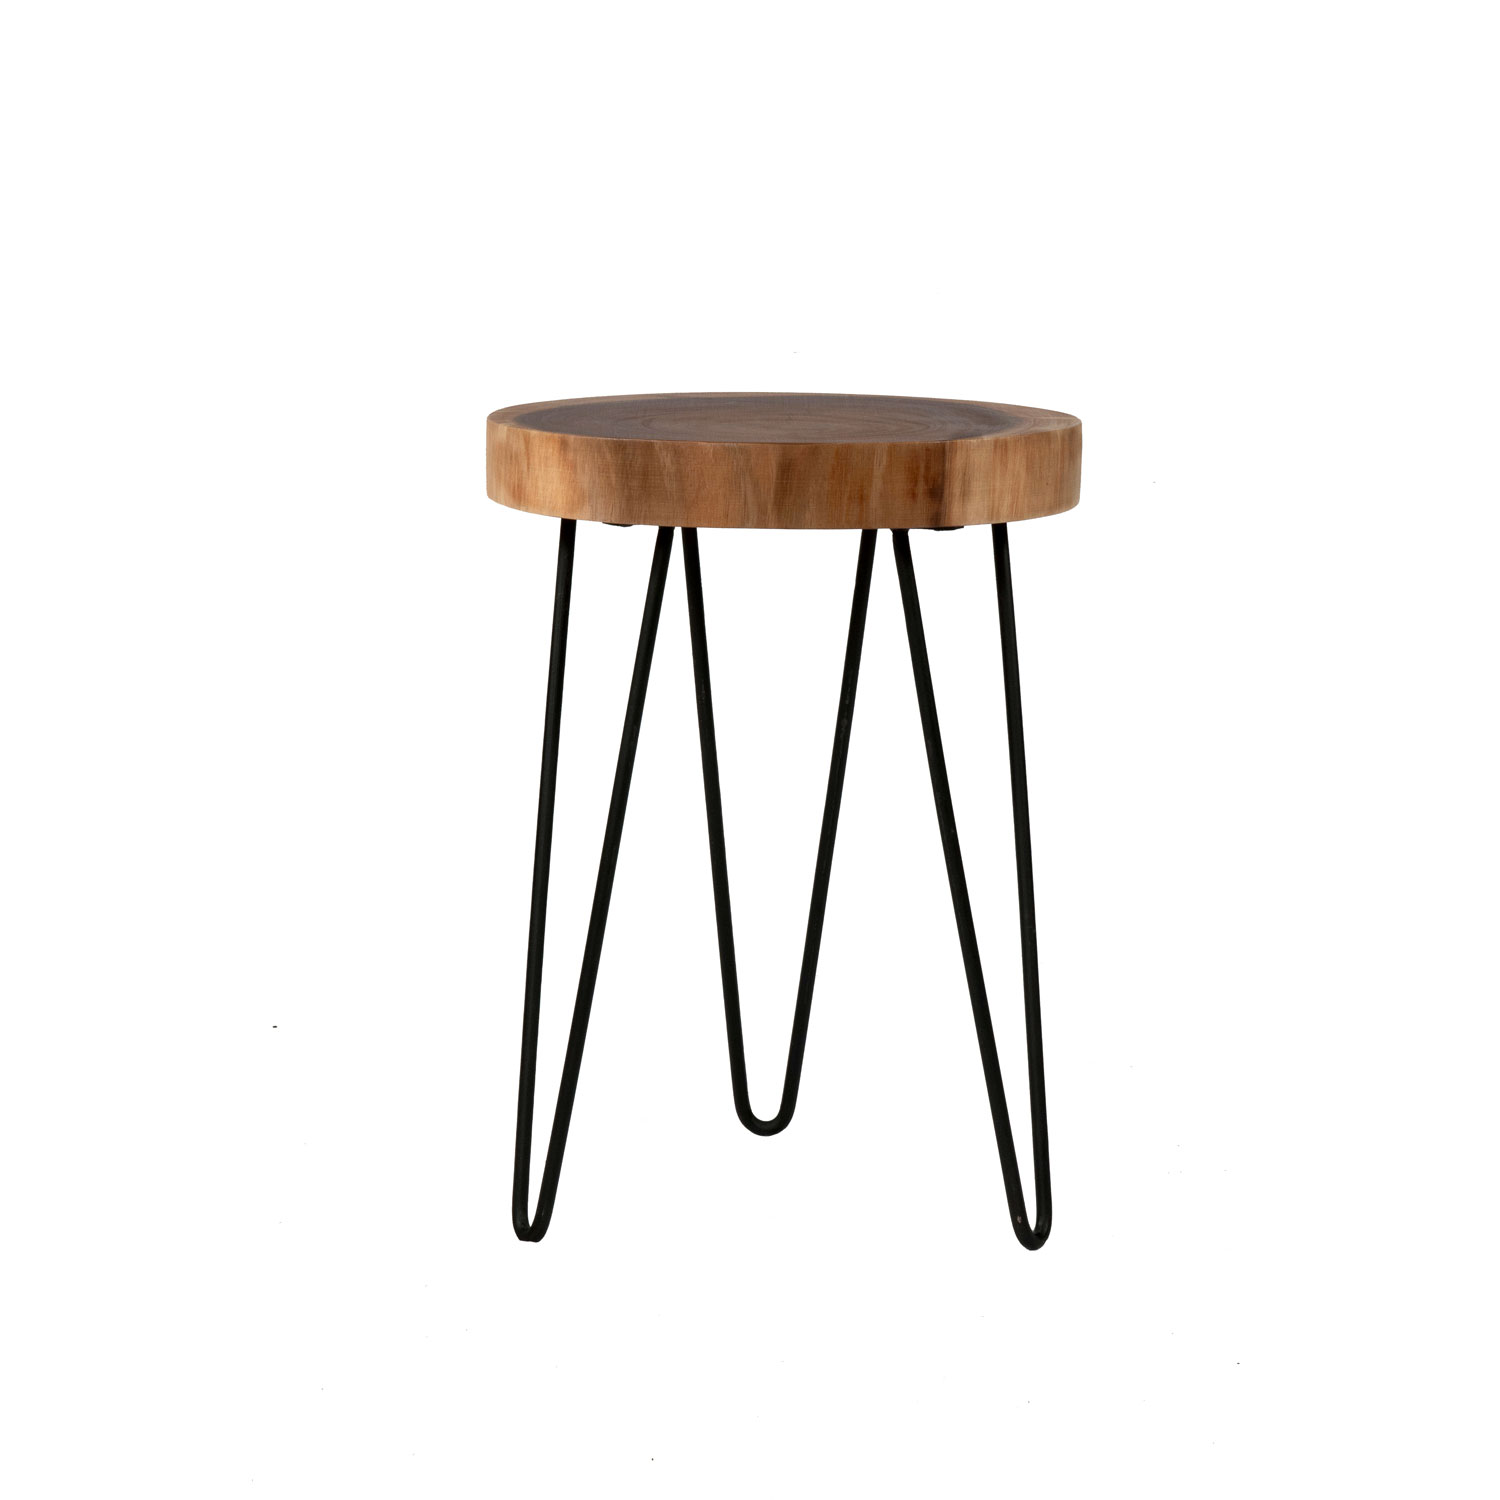 east main laredo brown teakwood round accent table teak wood hover zoom contemporary trestle dining green retro chair hand painted drawers hammered copper side butterfly lamp